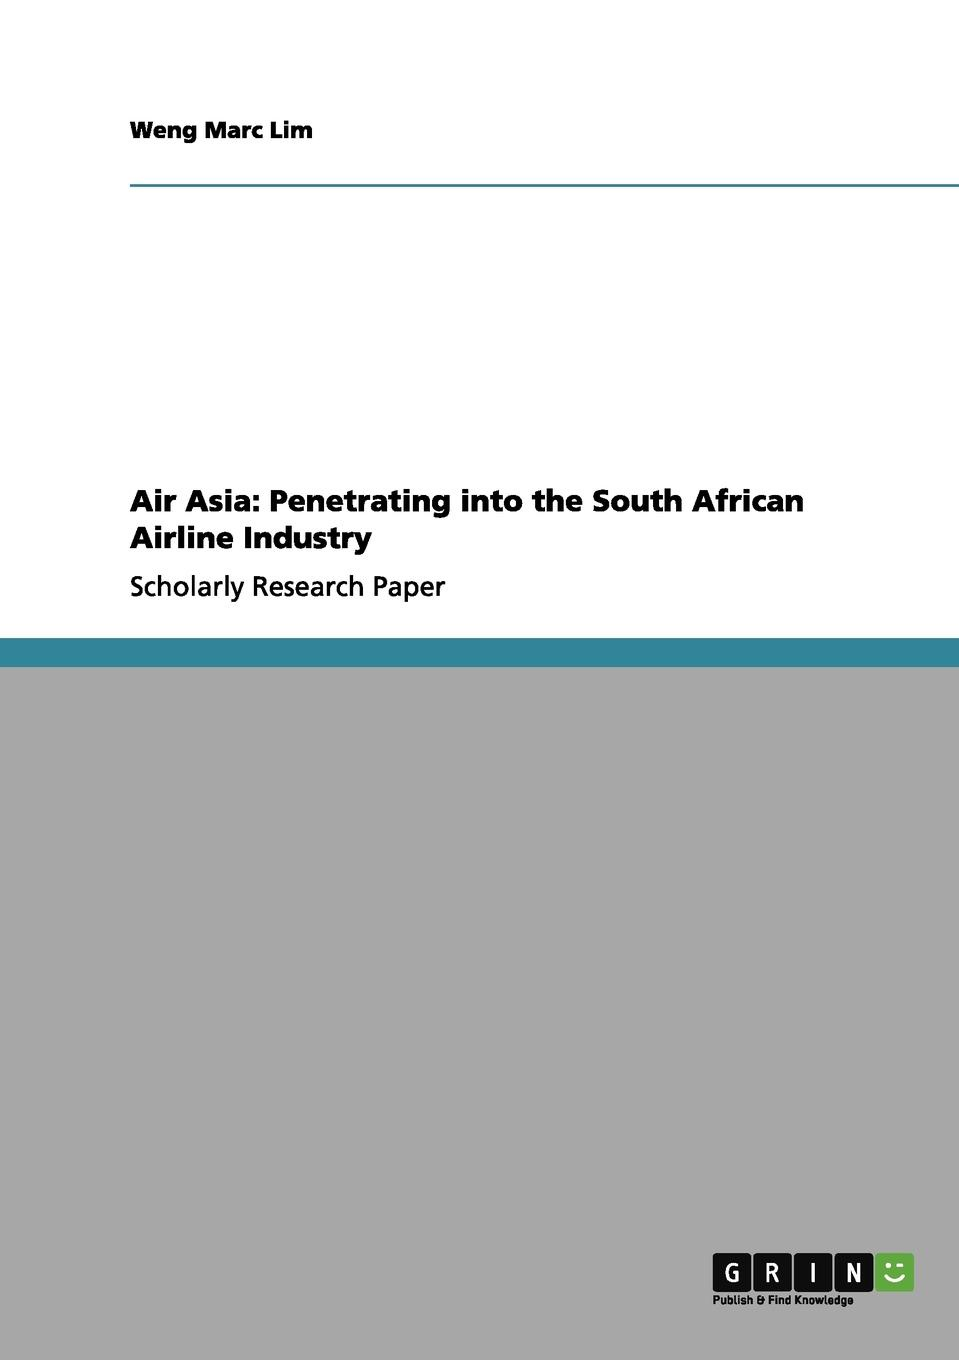 Weng Marc Lim Air Asia. Penetrating Into the South African Airline Industry